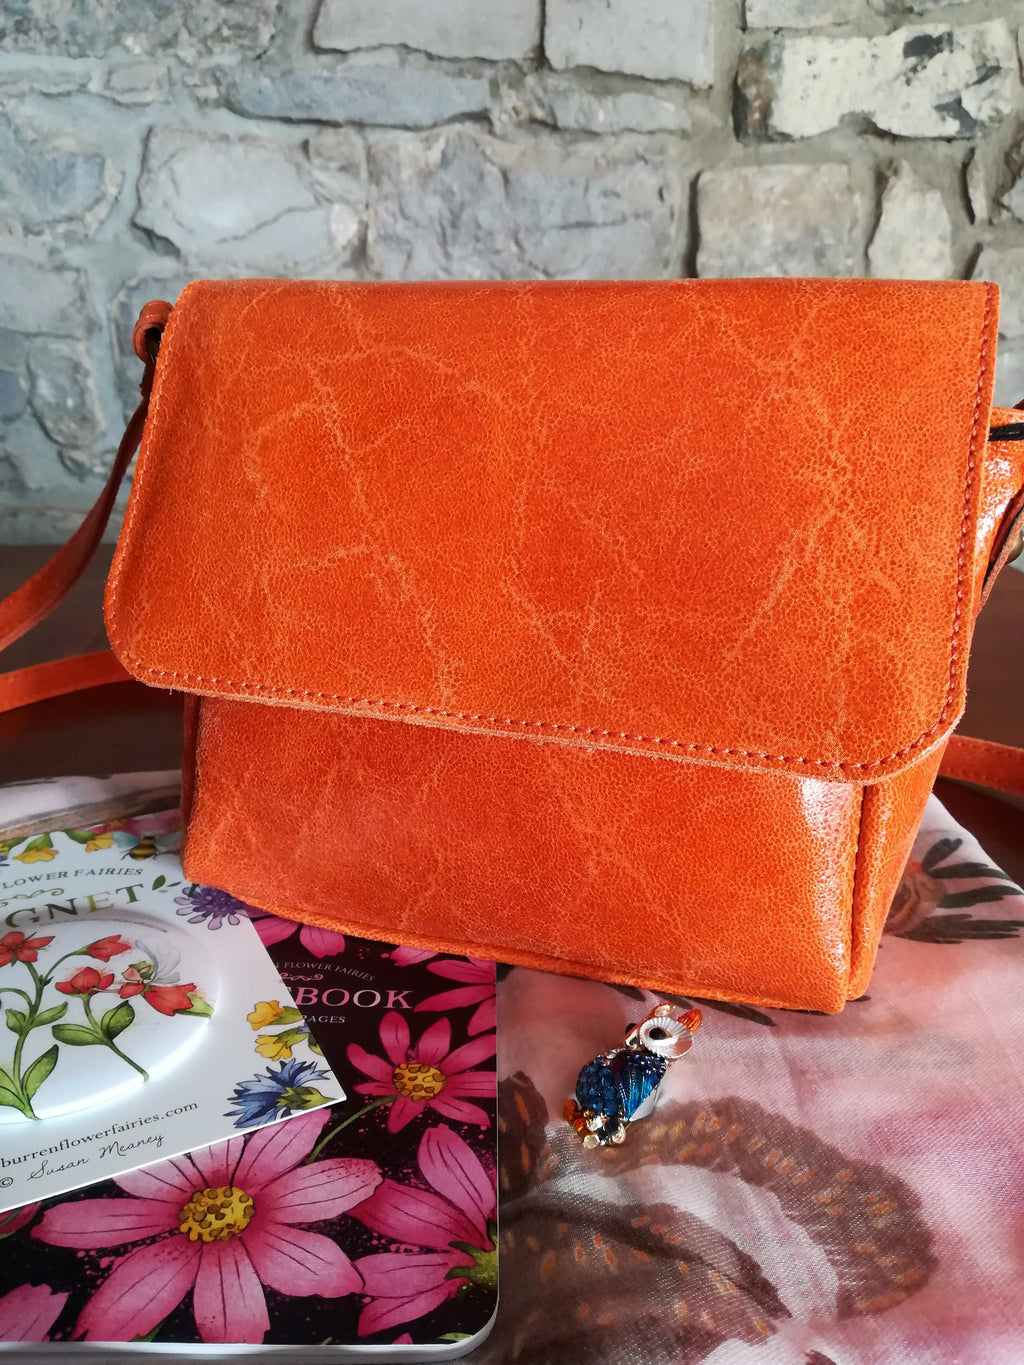 Lillian hand bag in orange